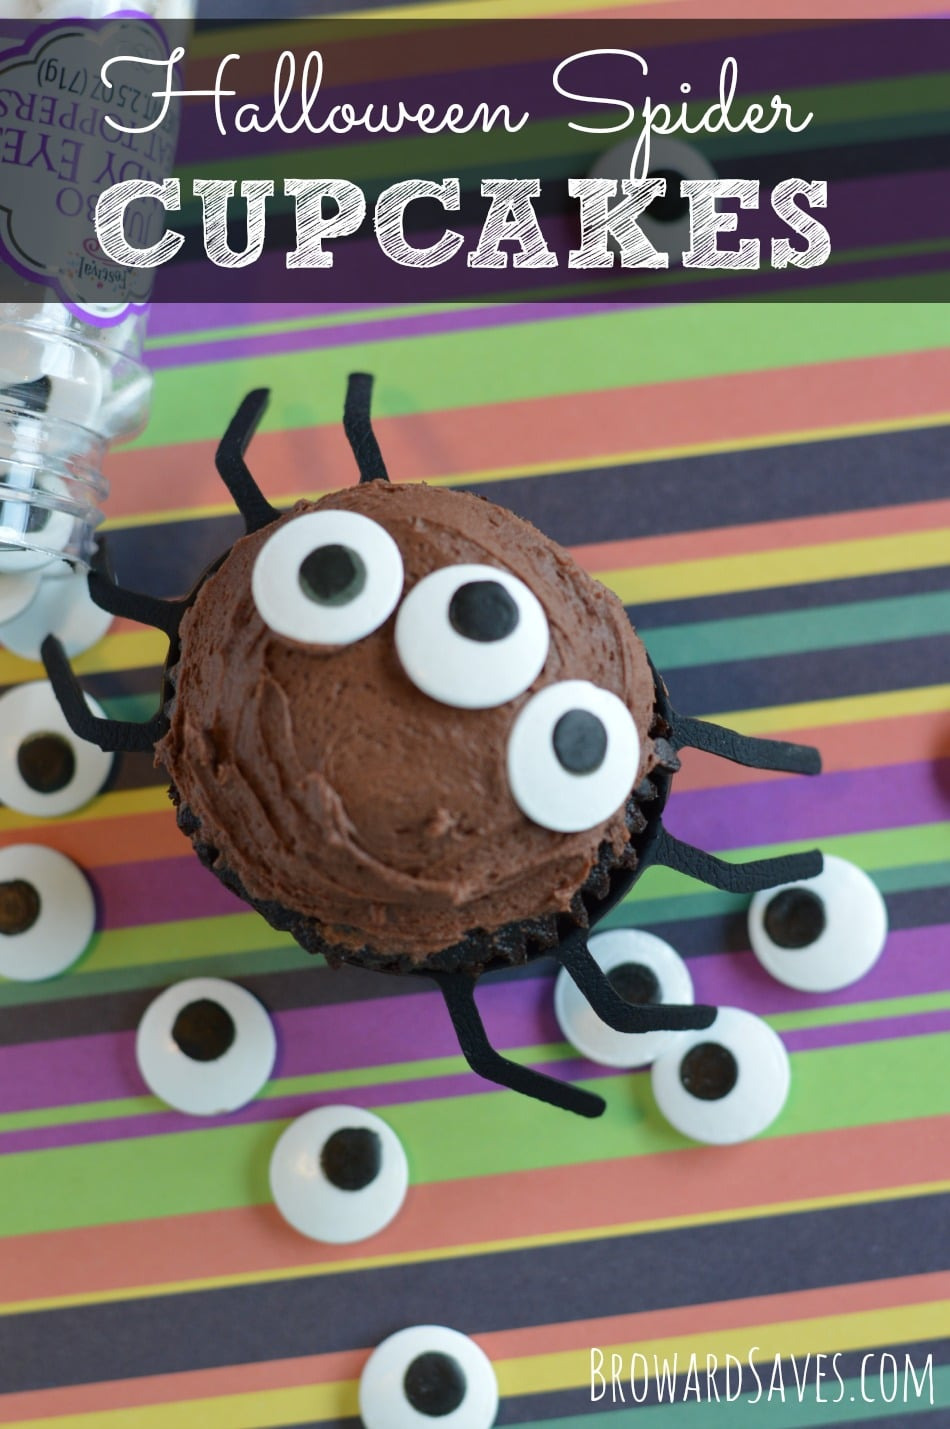 These delicious Halloween Spider Cupcakes are made with a yummy homemade chocolate frosting and cute candy eyes. Have the kids help you decorate the top. Yum!